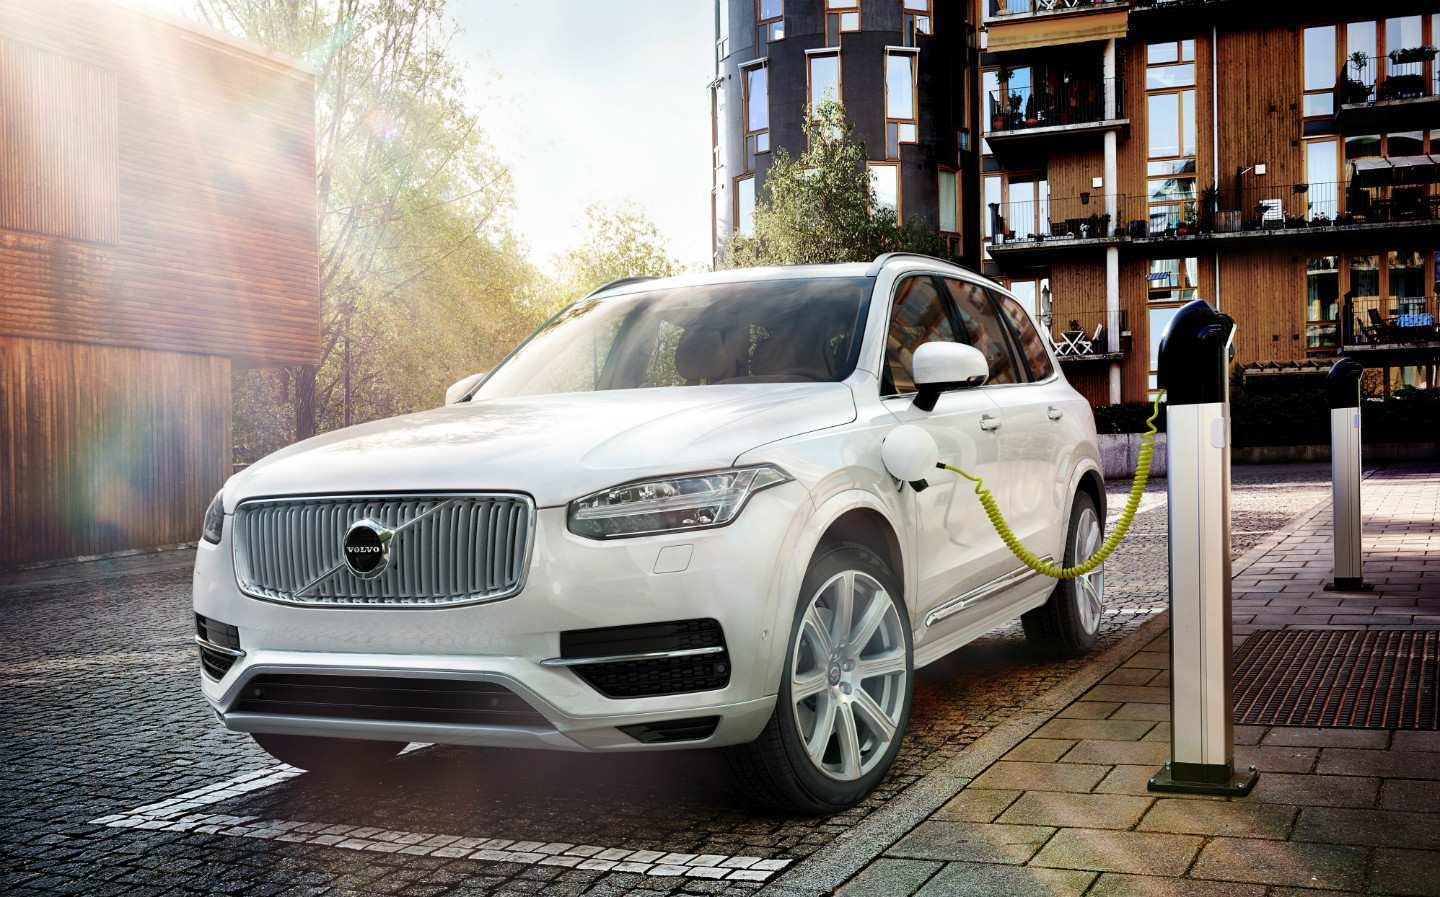 32 All New Volvo All Electric Cars By 2019 Exterior